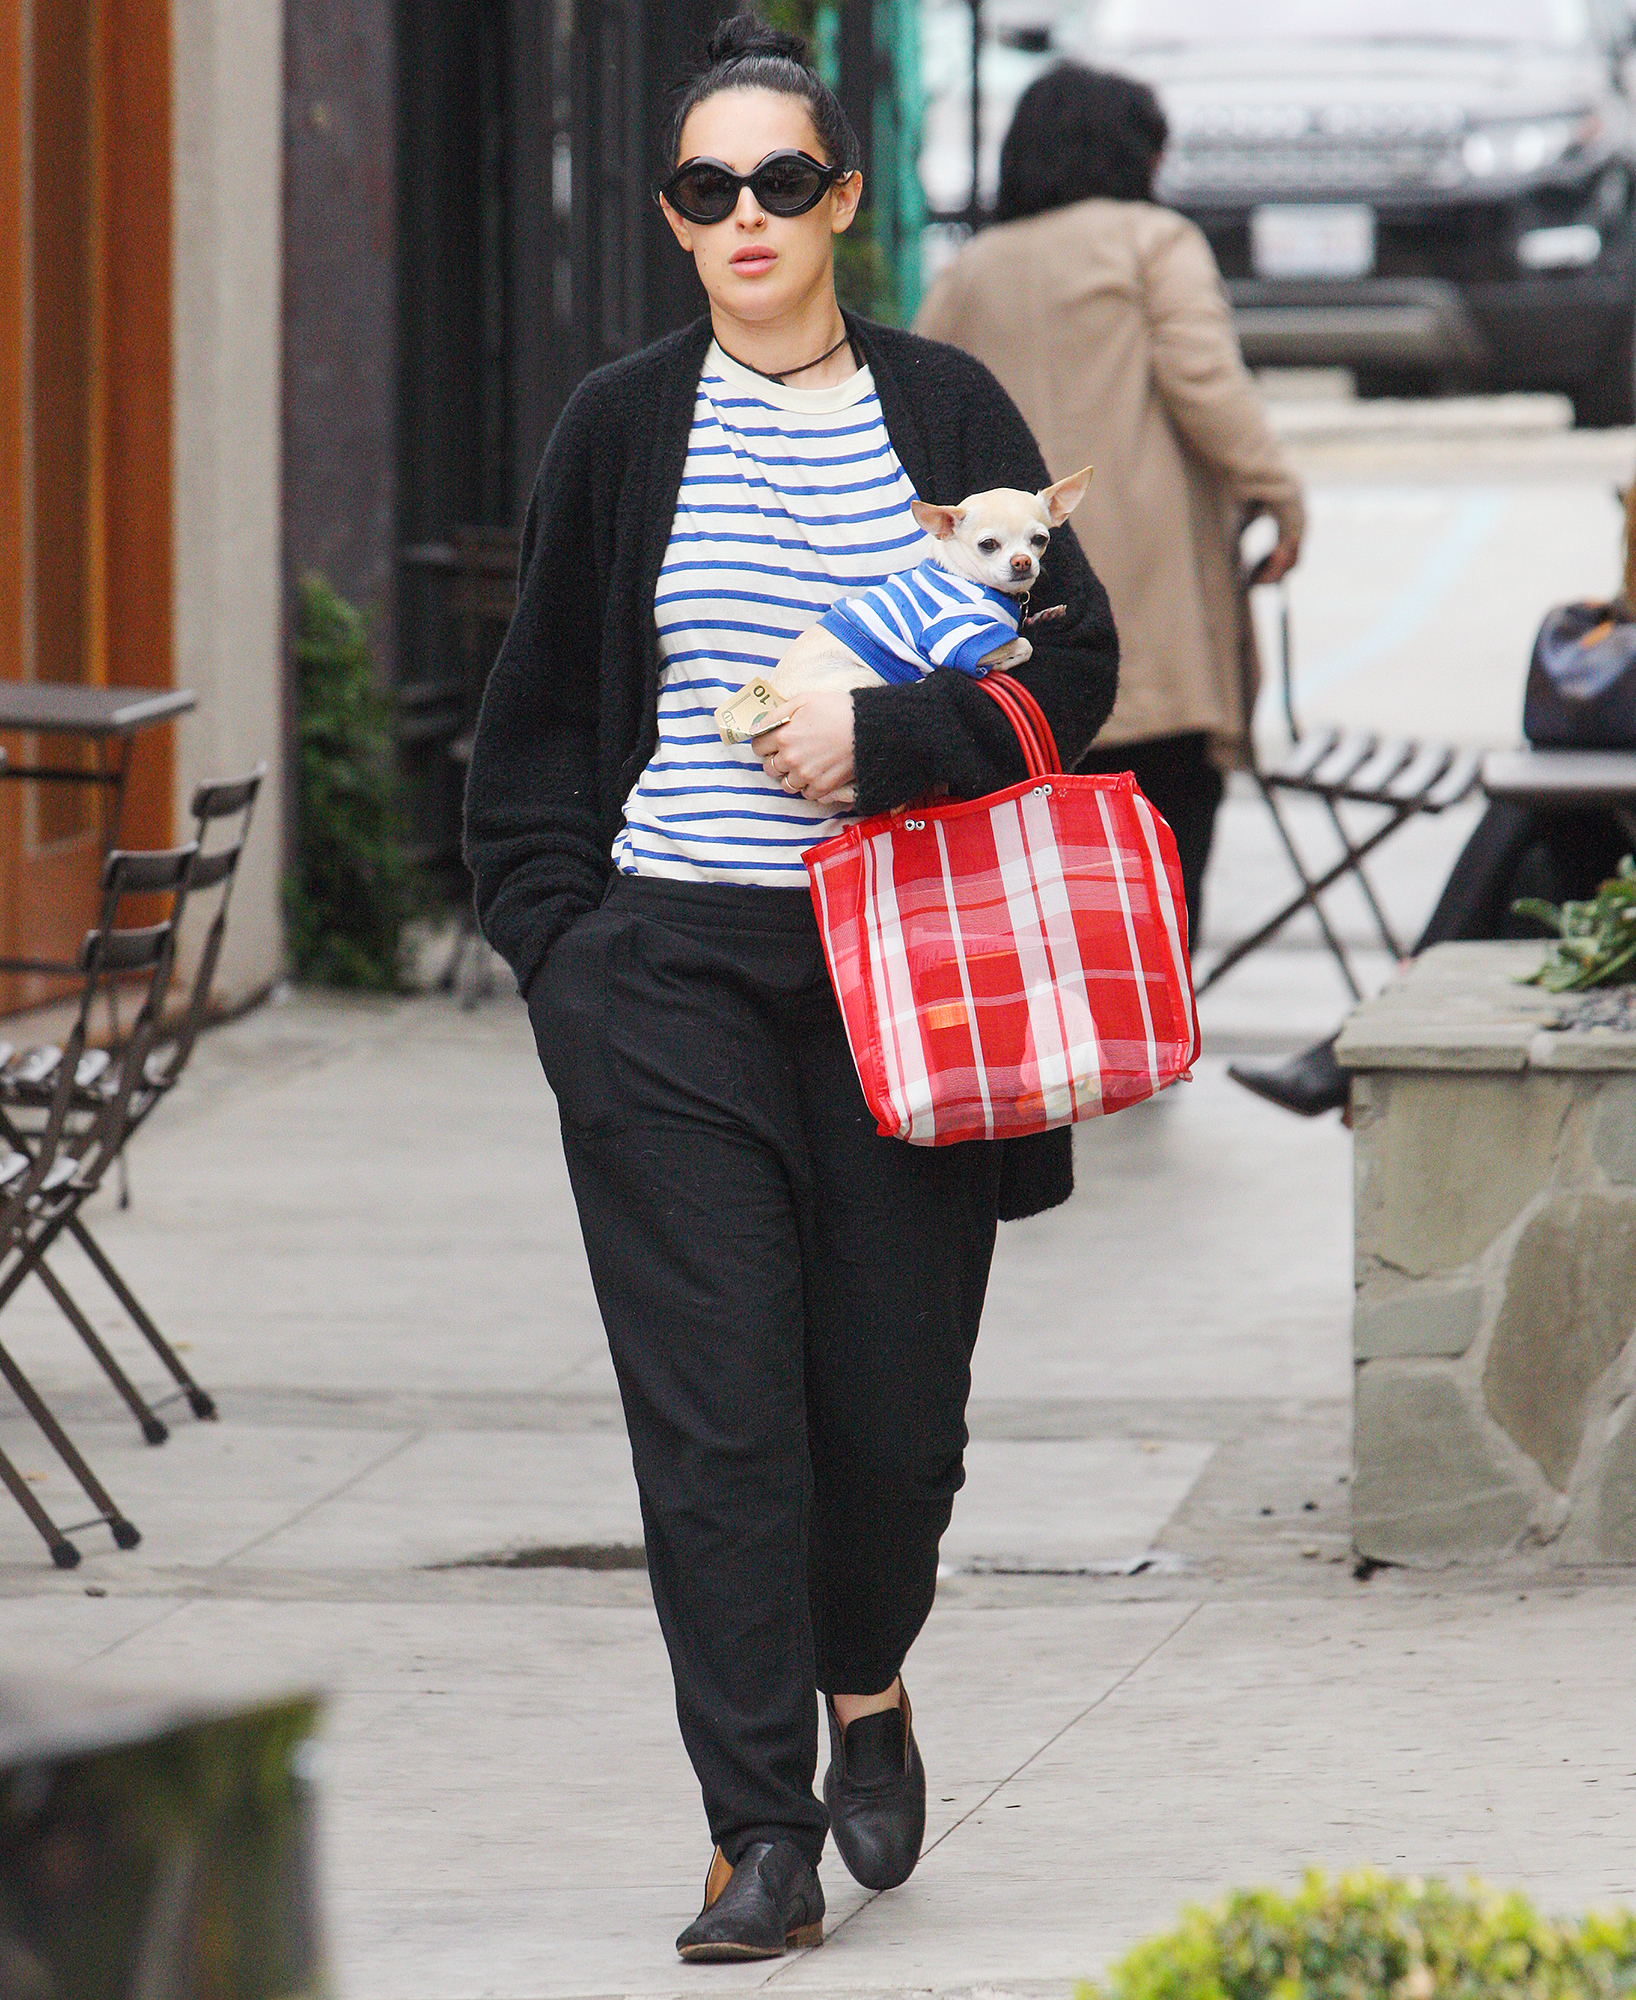 EXCLUSIVE: Rumer Willis out and about with her dog in a matching outfit